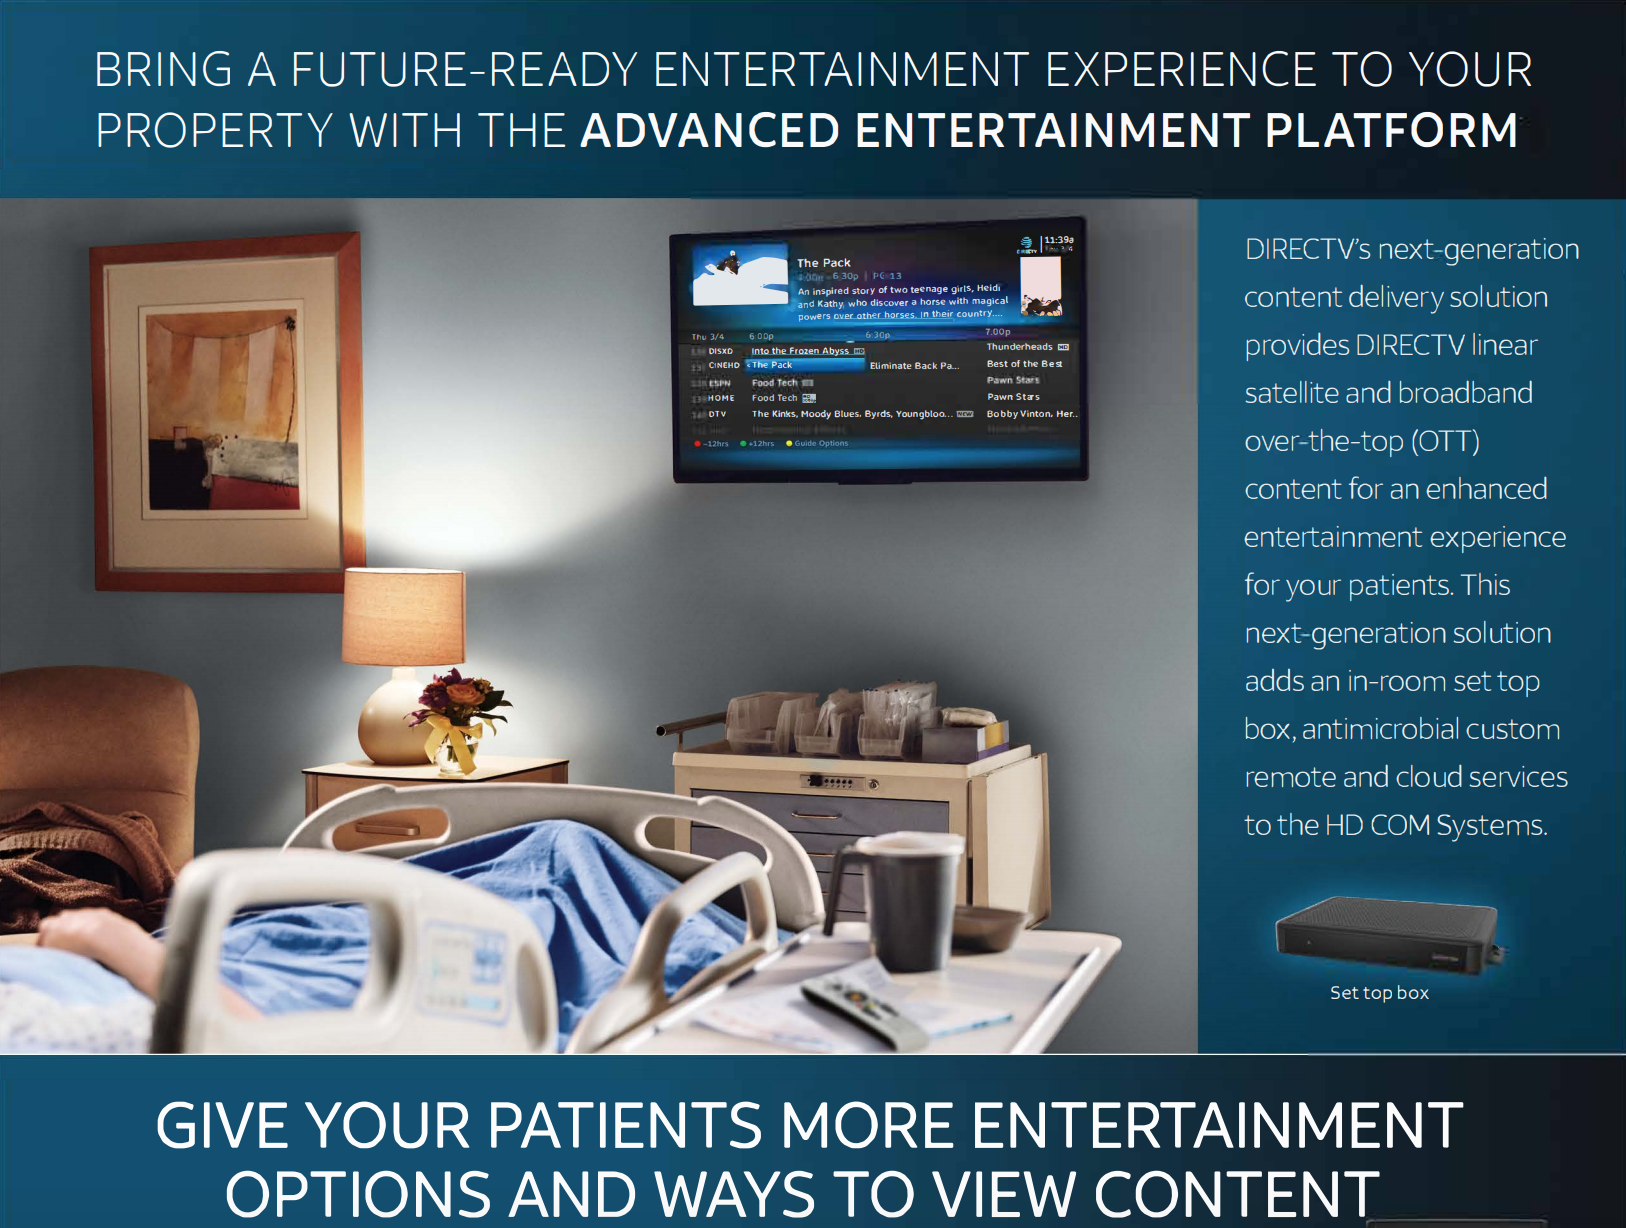 Bring a Future-Ready Entertainment Experience to Your Property with the Advanced Entertainment Platform